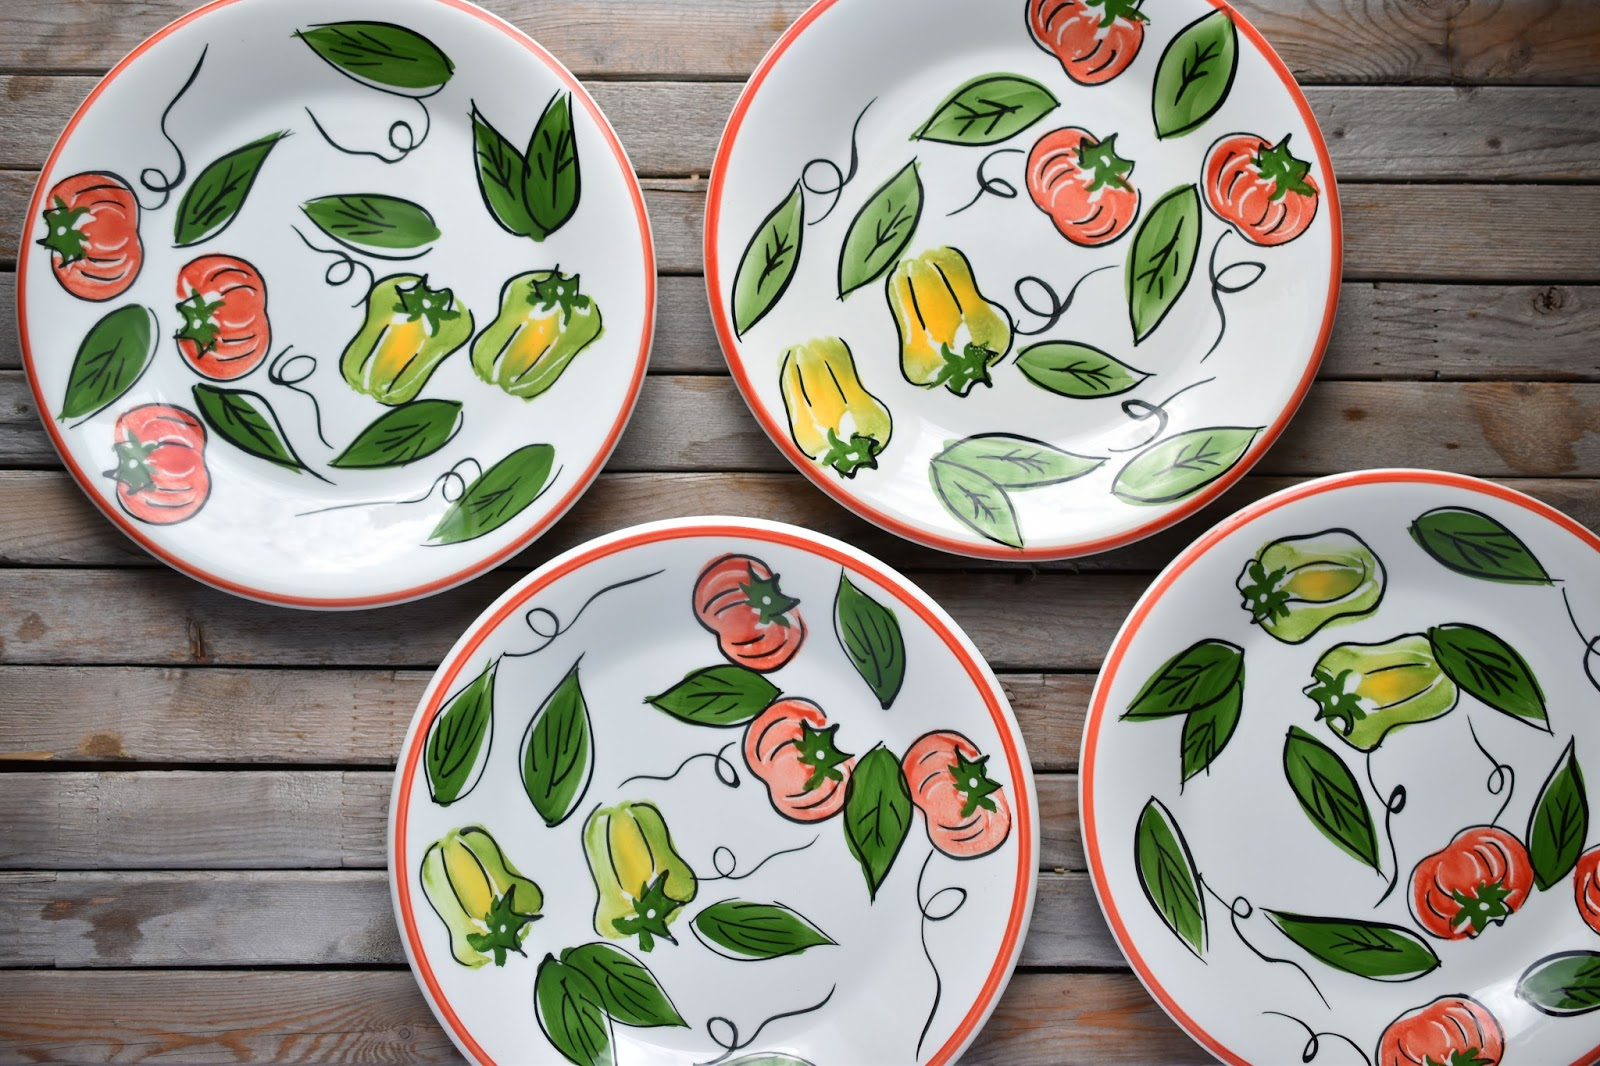 Hand Painted Plates : Woman in real life the art of everyday pier hand